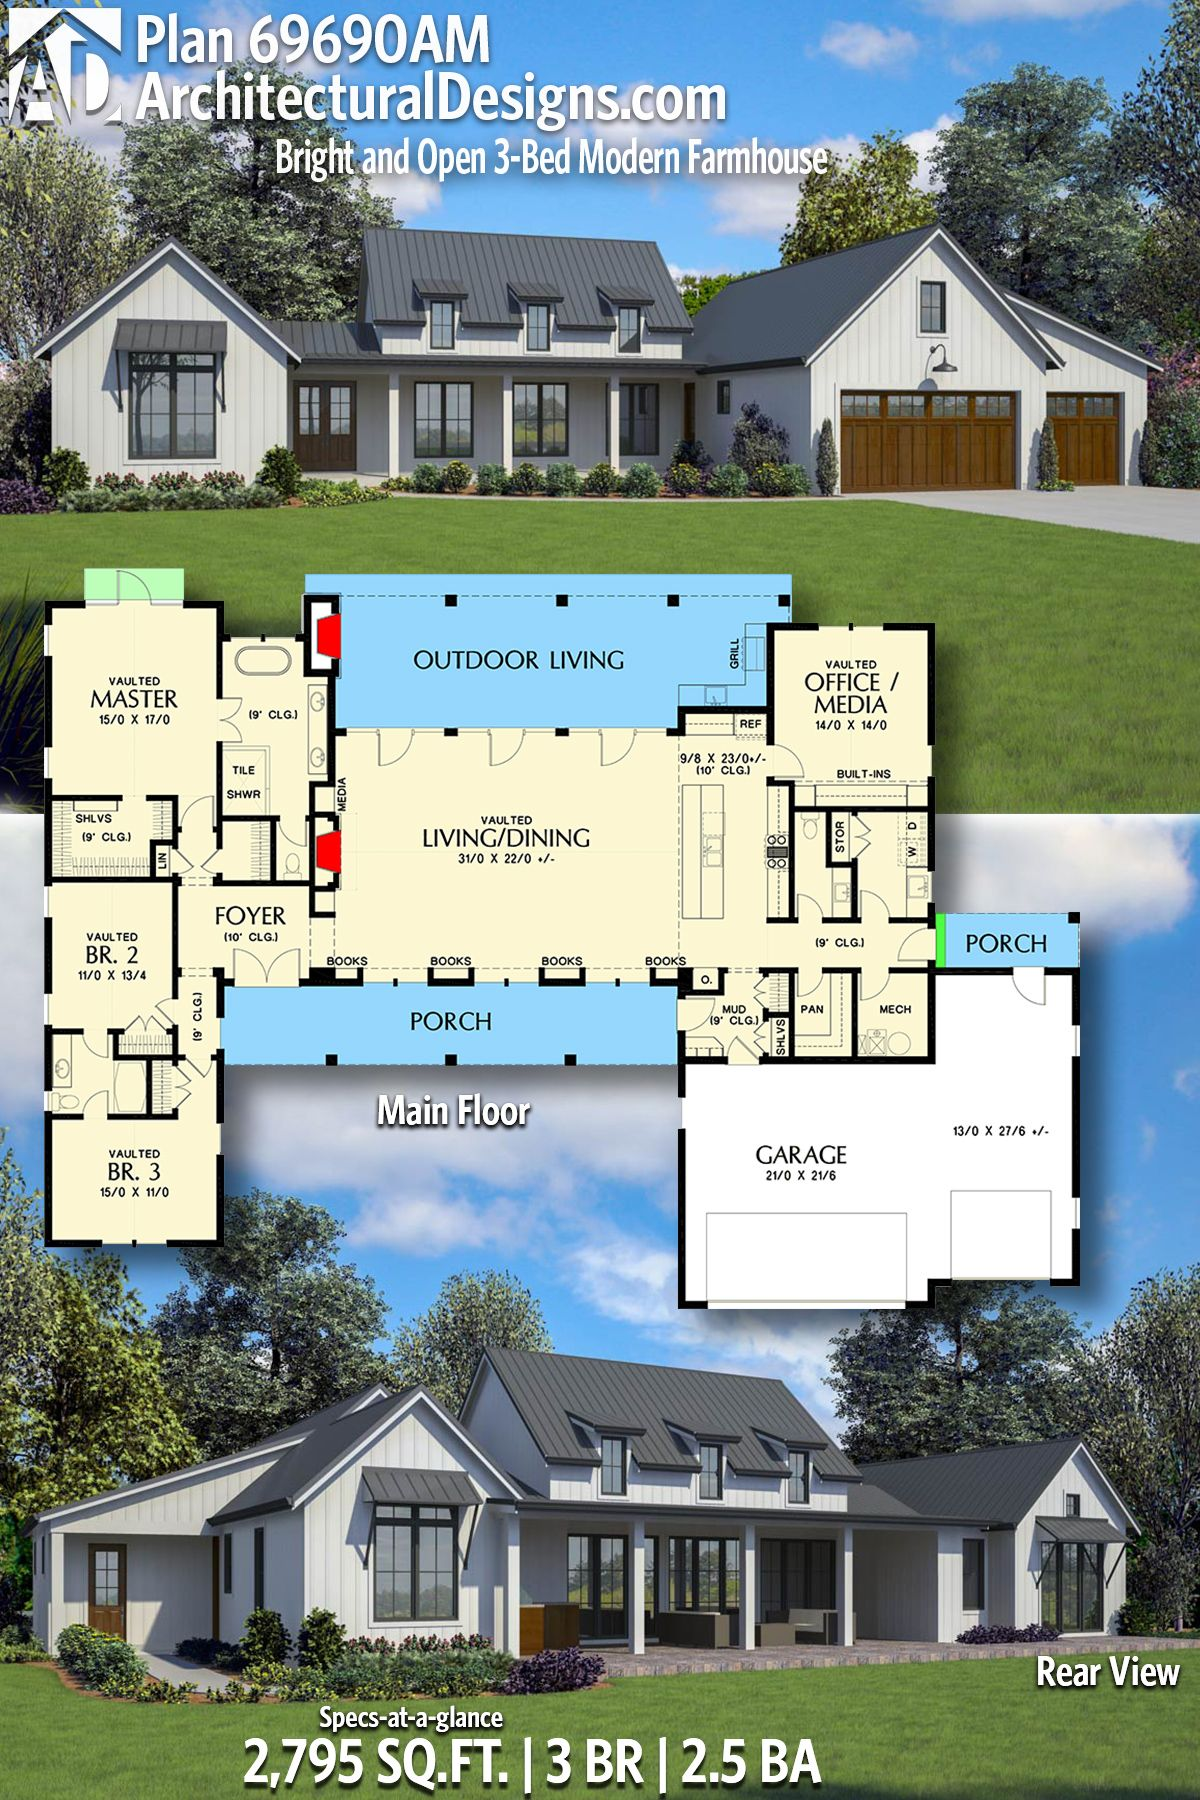 Plan 69690am Bright And Open Modern Farmhouse House Plans Farmhouse New House Plans Farmhouse Plans